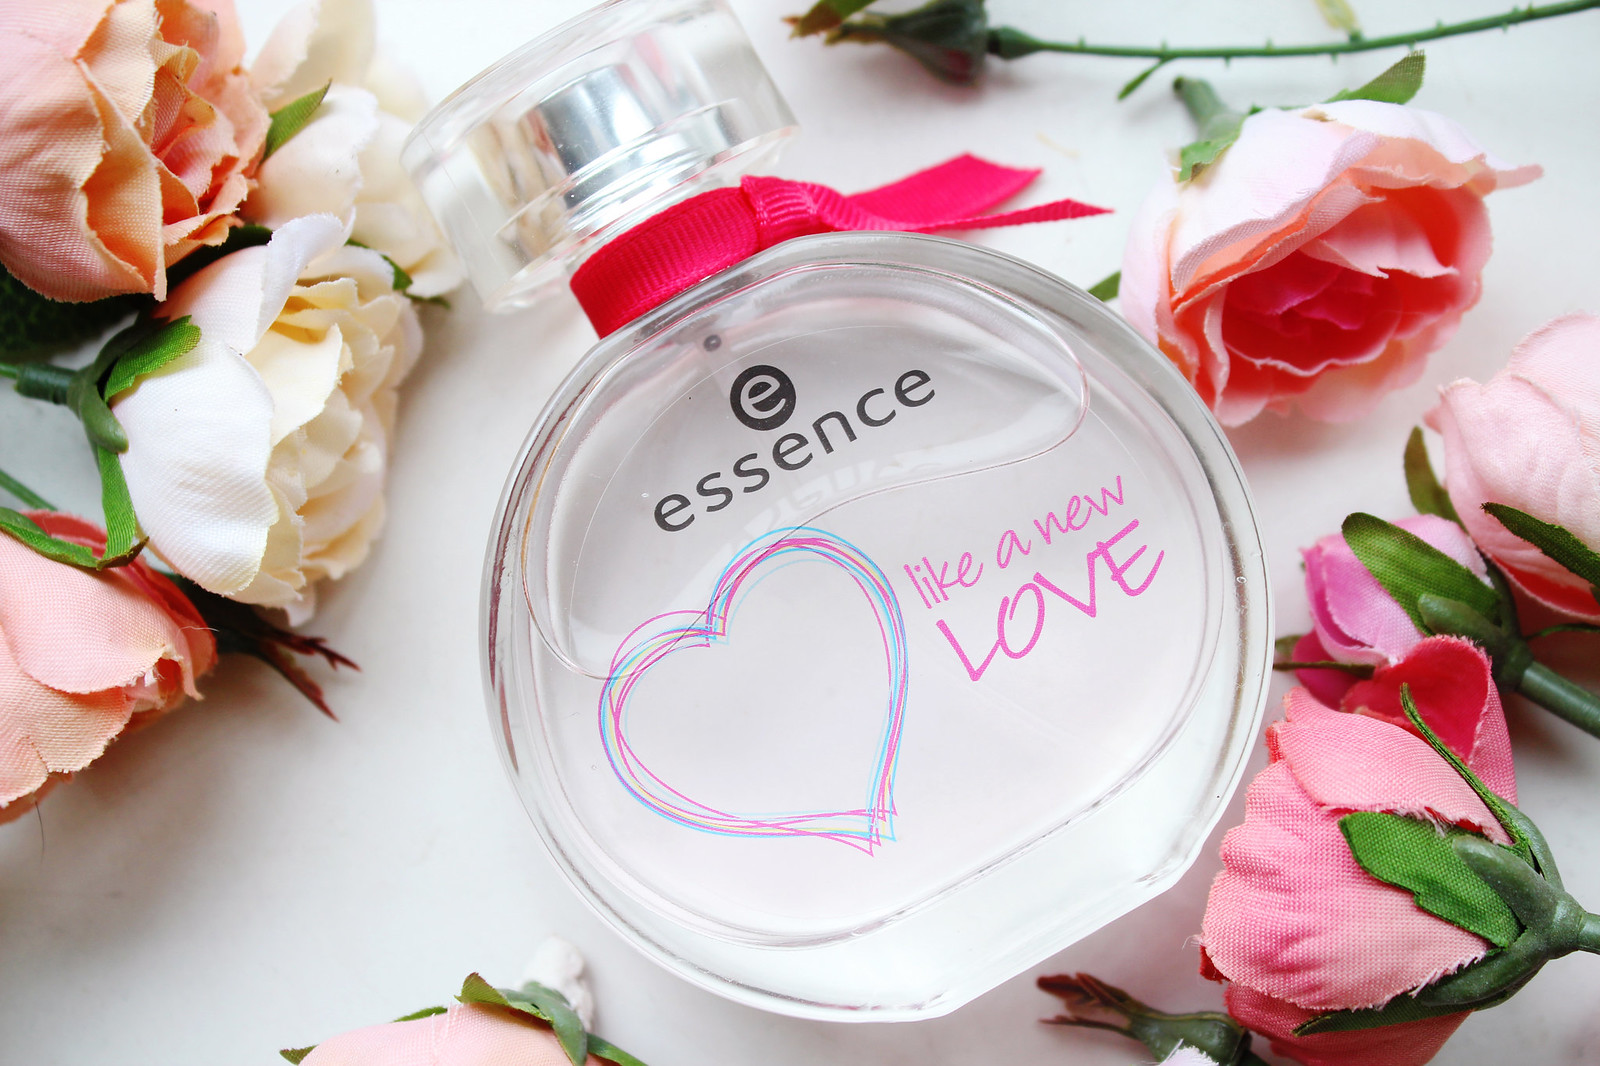 Essence eau de toilette Like a new love review